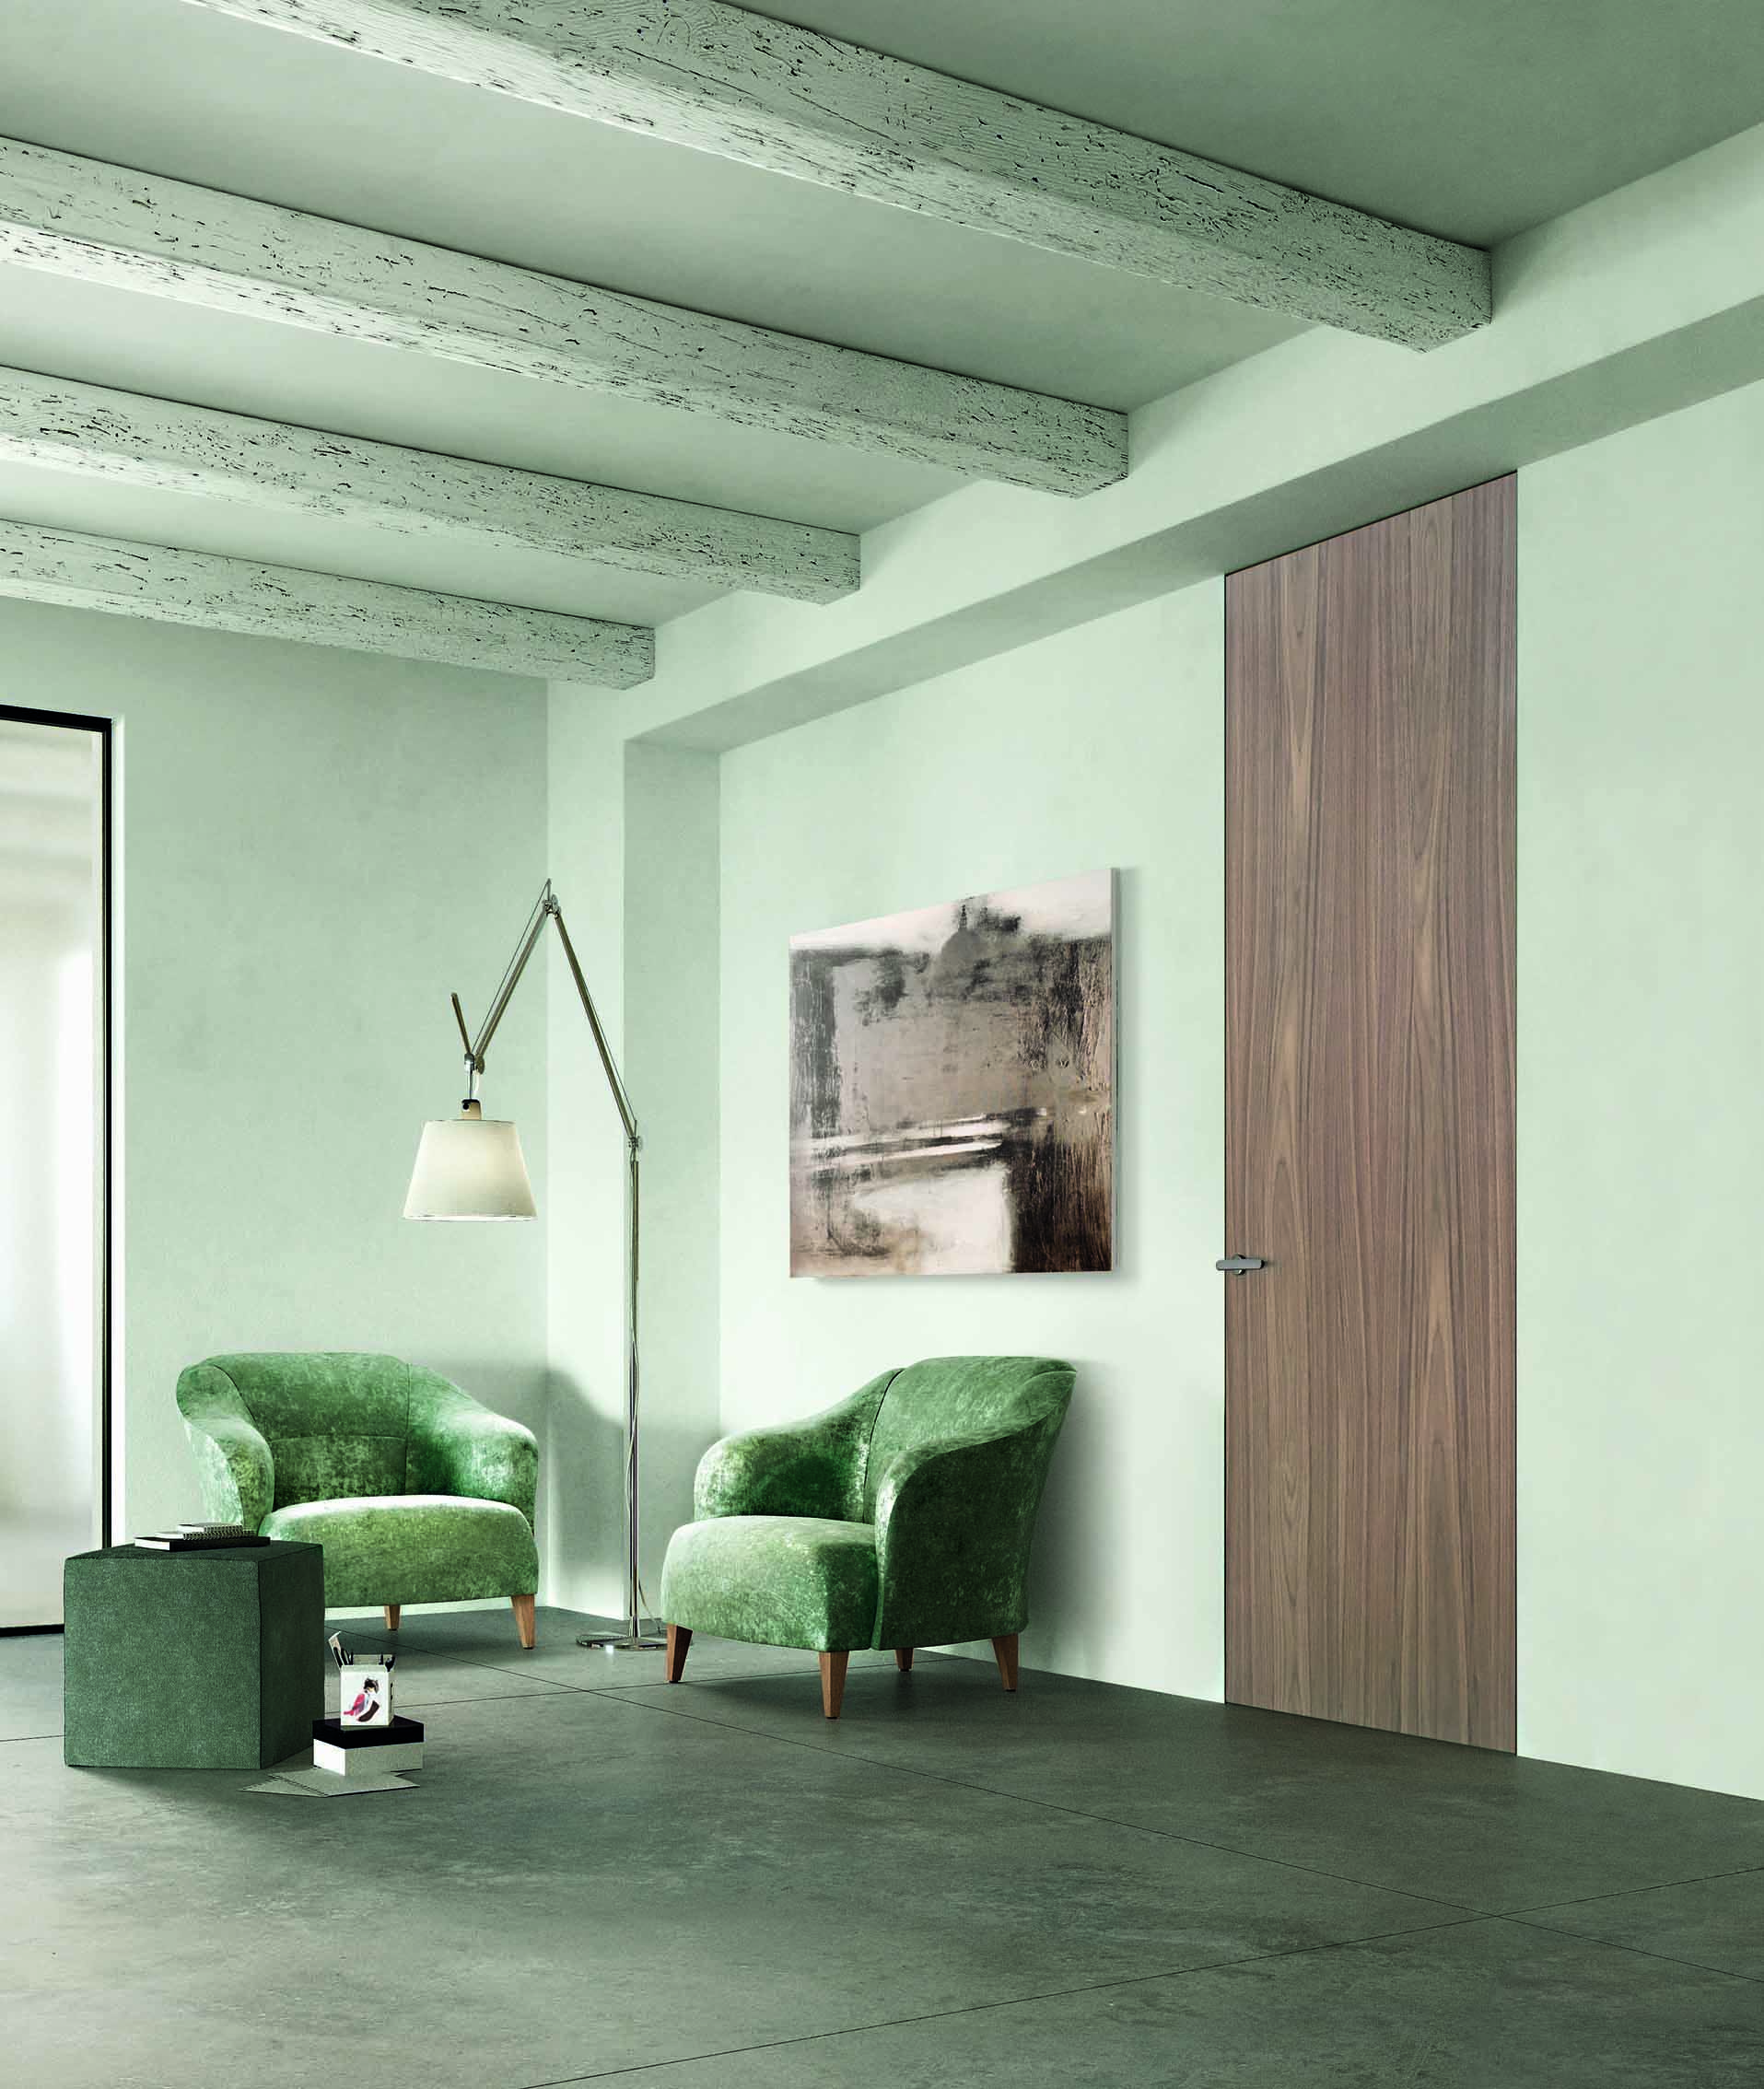 FL_Exitlyne-Zero_Noce-Canaletto-Natural-Touch